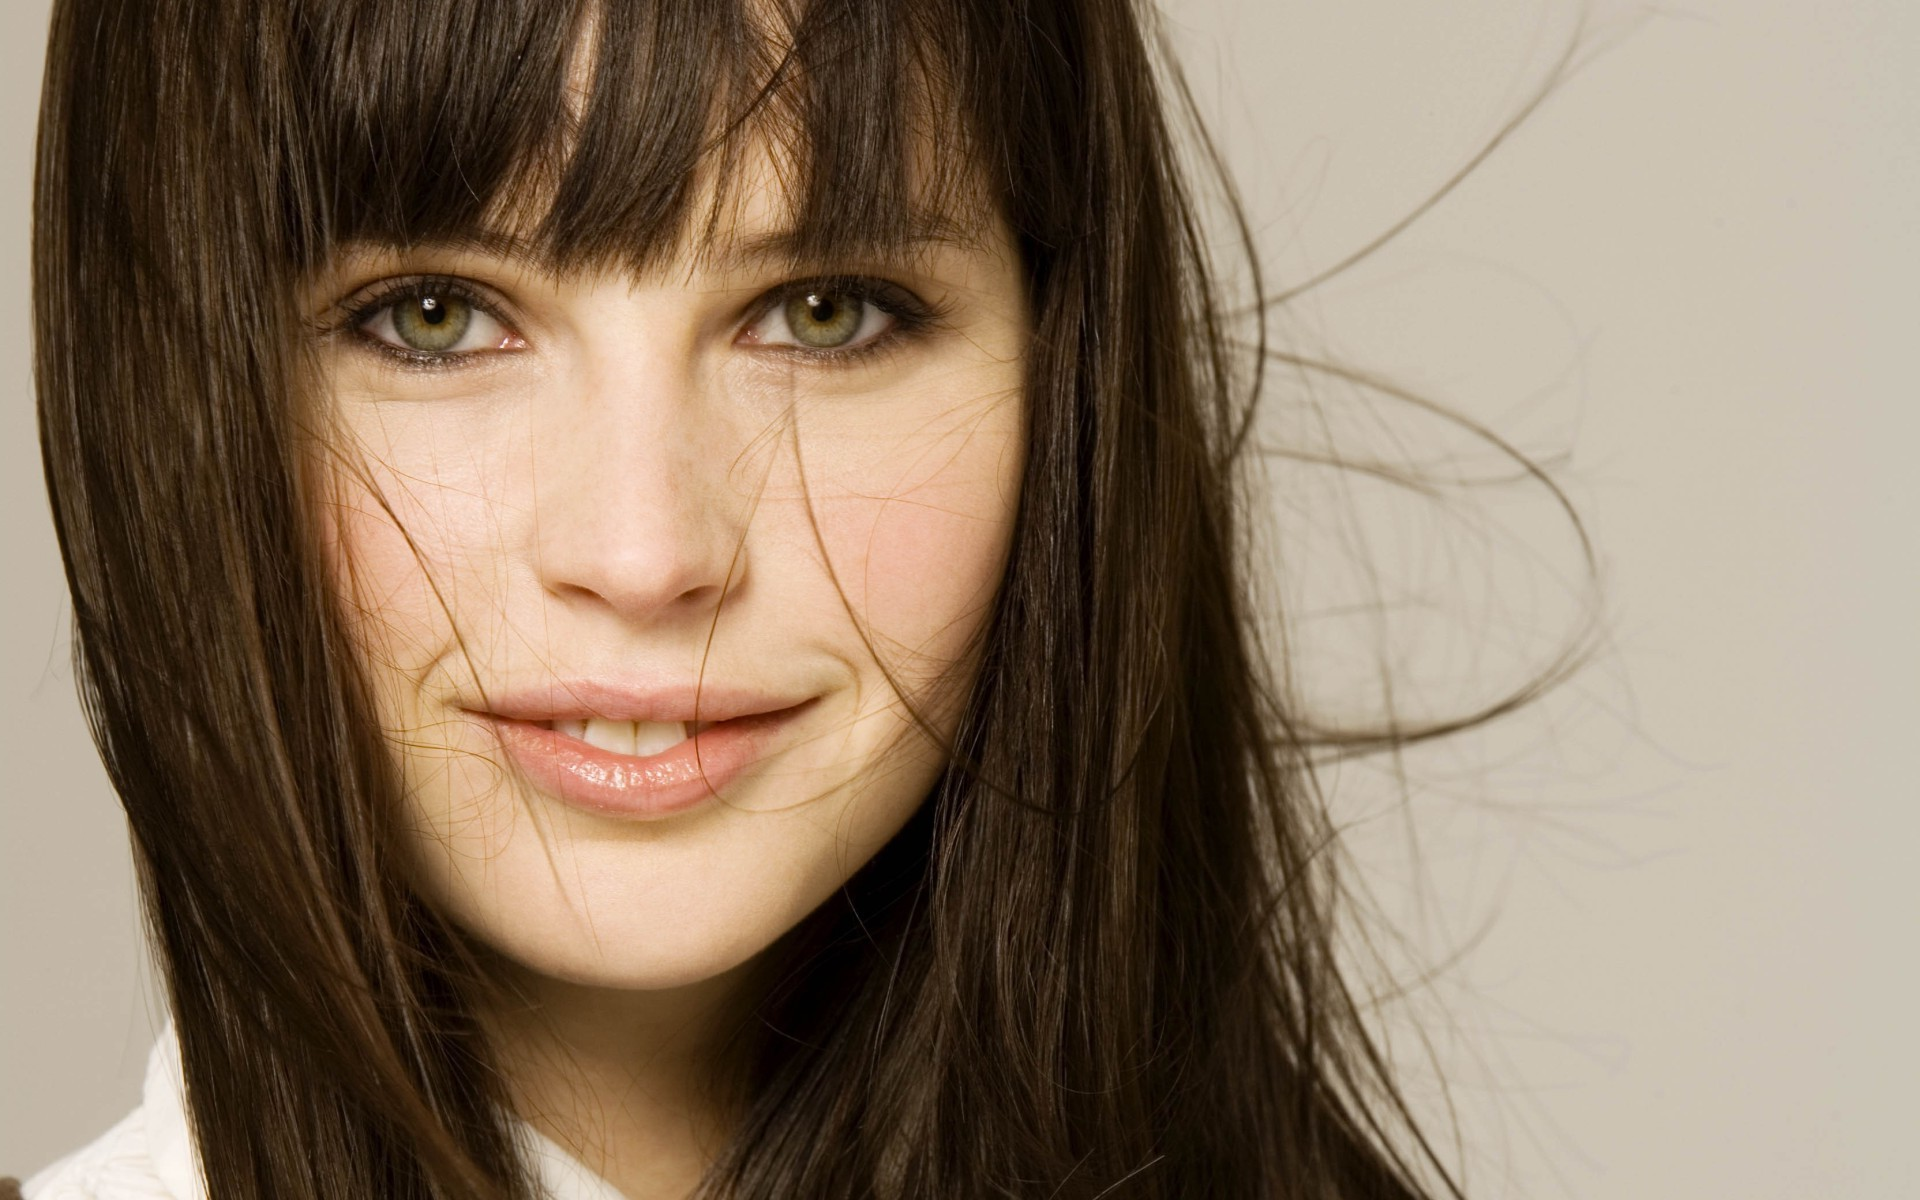 Star Wars News. Felicity Jones in Star Wars Rogue One